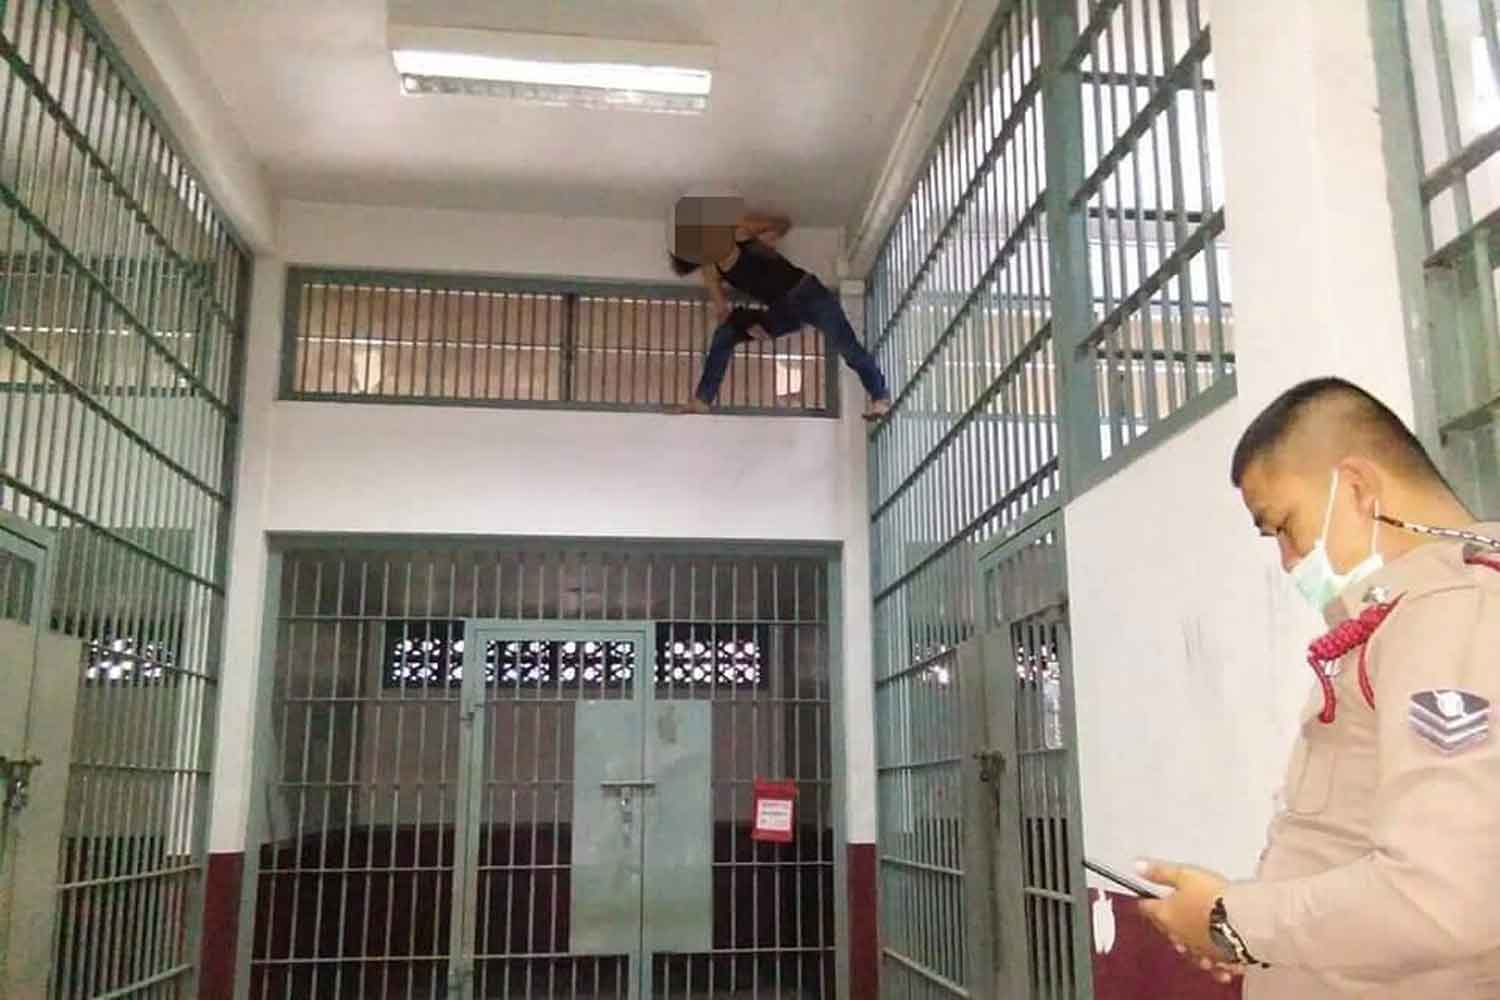 Ploypatcha Sukpansila, 37, climbs to the ceiling of her cell and stays there for 30 minutes at the Sutthisan police station in Din Daeng district, Bangkok, on Thursday morning after being arrested with a gun and bullets. (Police TV photo)